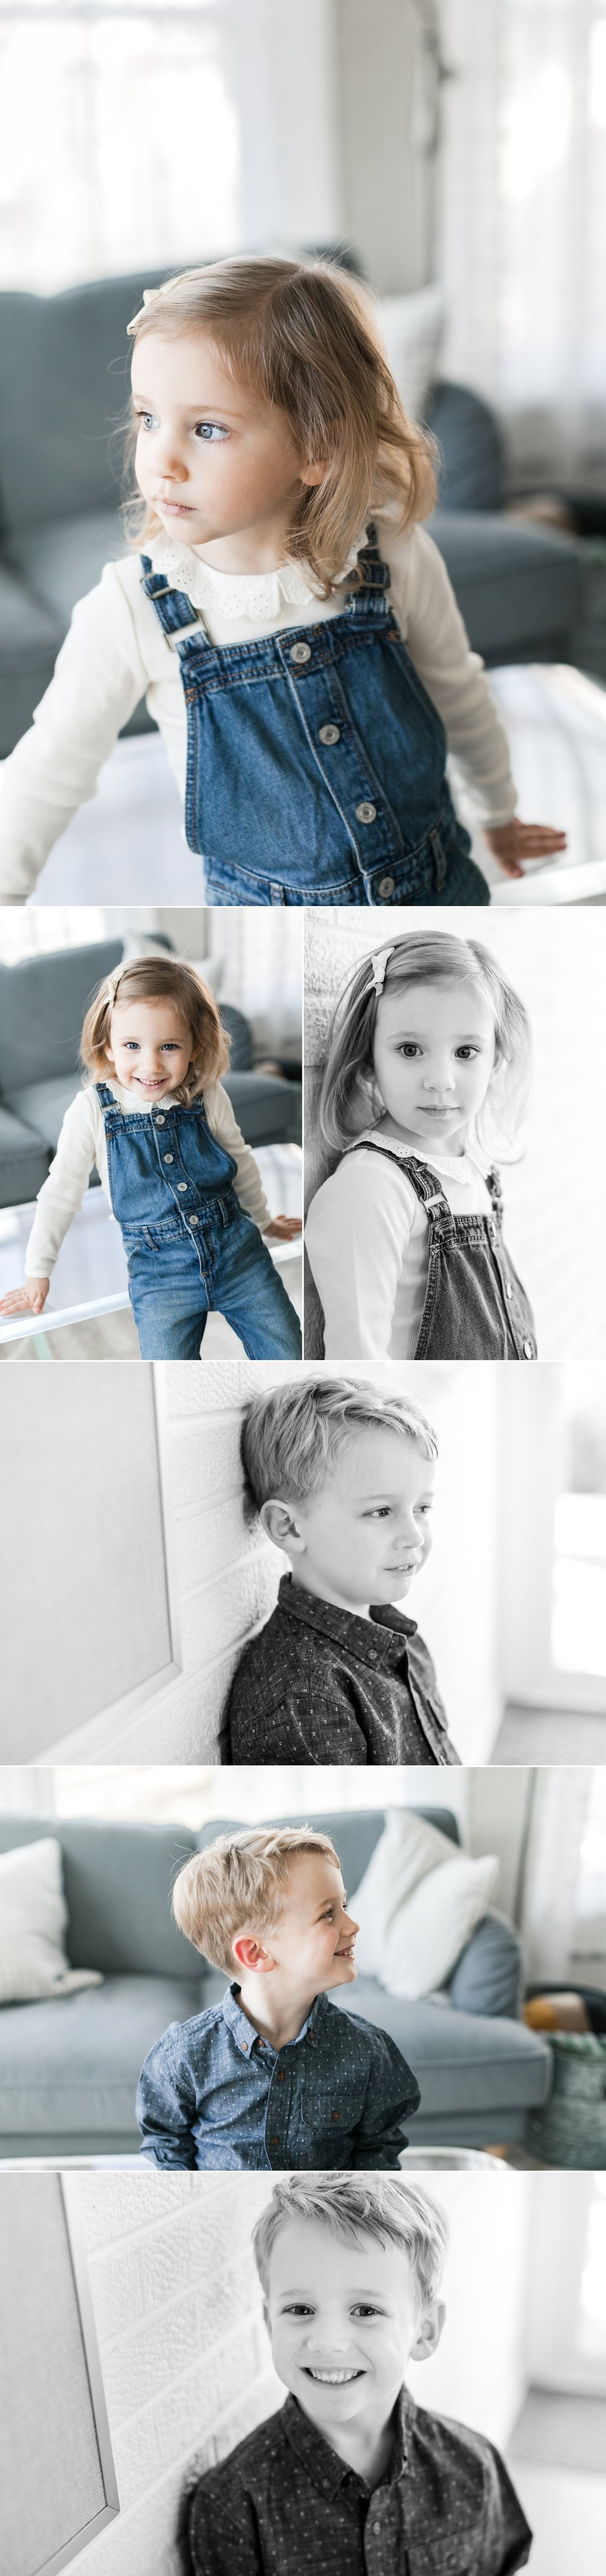 jenny grimm photography chicago lifestyle family photographer